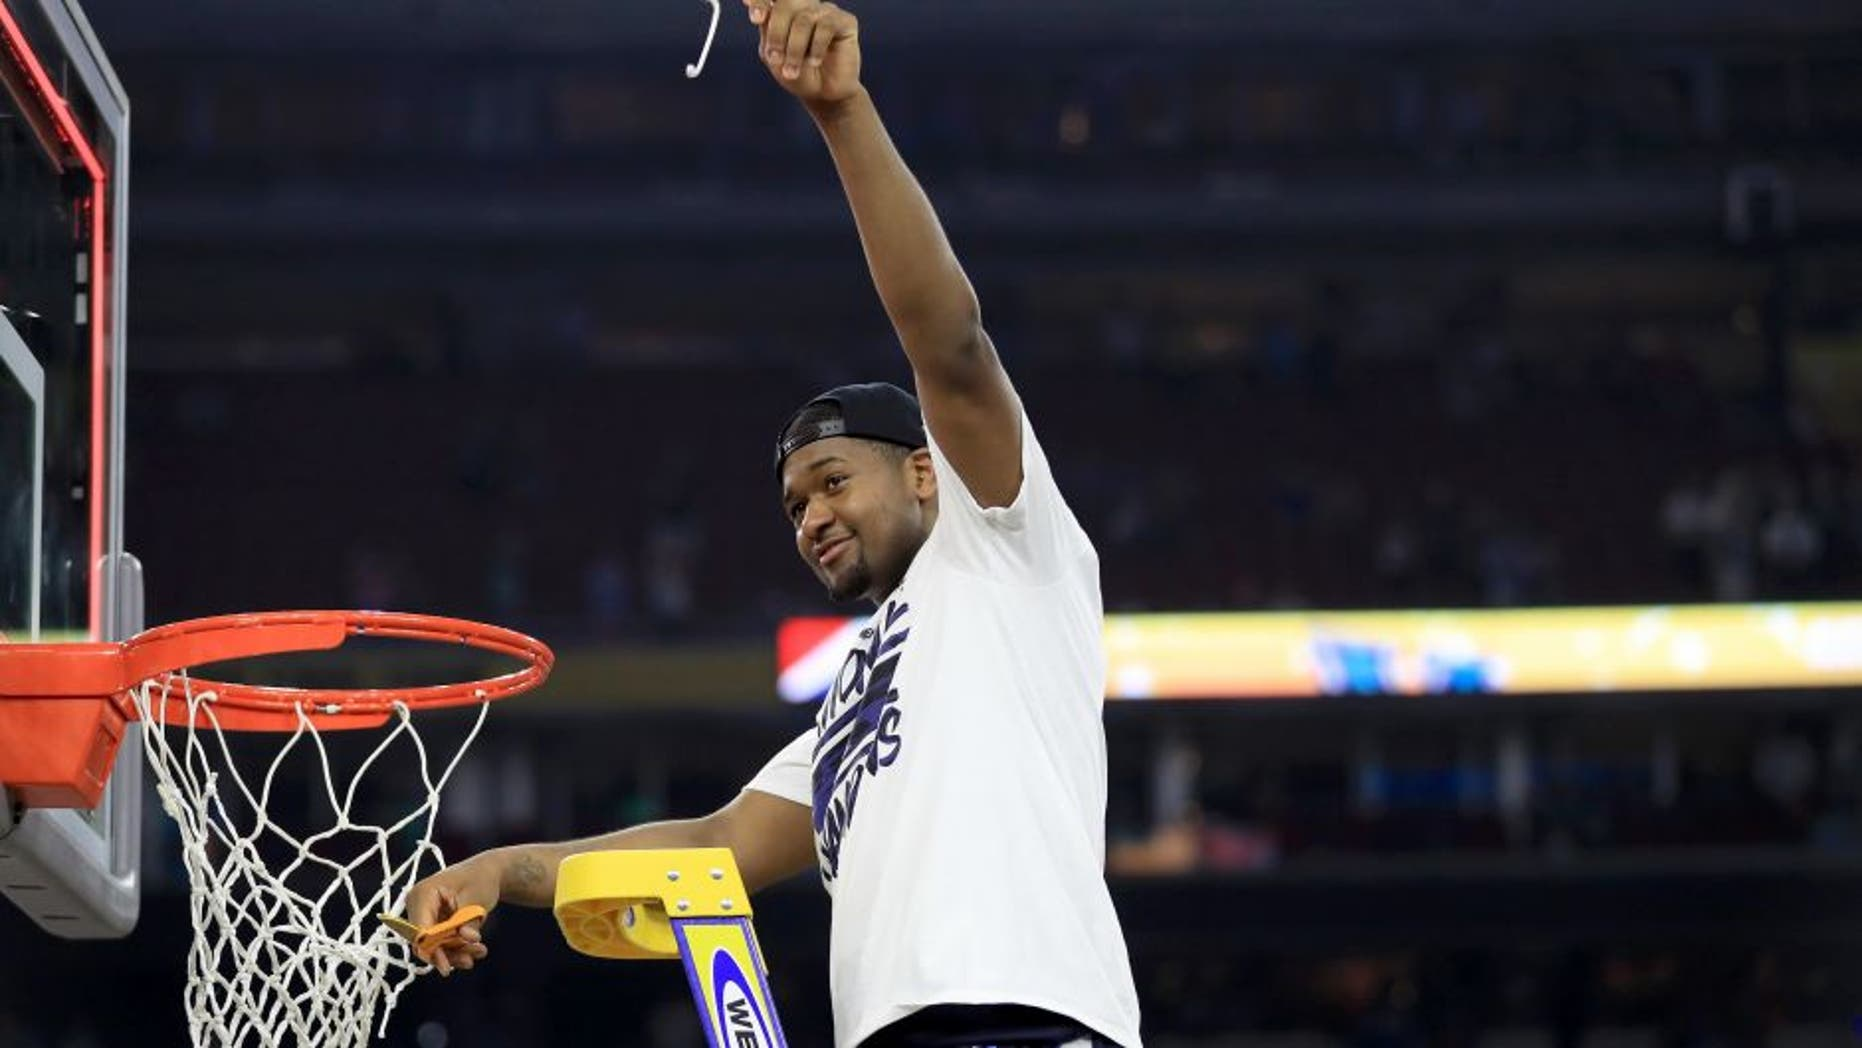 HOUSTON, TEXAS - APRIL 04: Kris Jenkins #2 of the Villanova Wildcats cuts the net after defeating the North Carolina Tar Heels 77-74 to win the 2016 NCAA Men's Final Four National Championship game at NRG Stadium on April 4, 2016 in Houston, Texas. (Photo by Ronald Martinez/Getty Images)